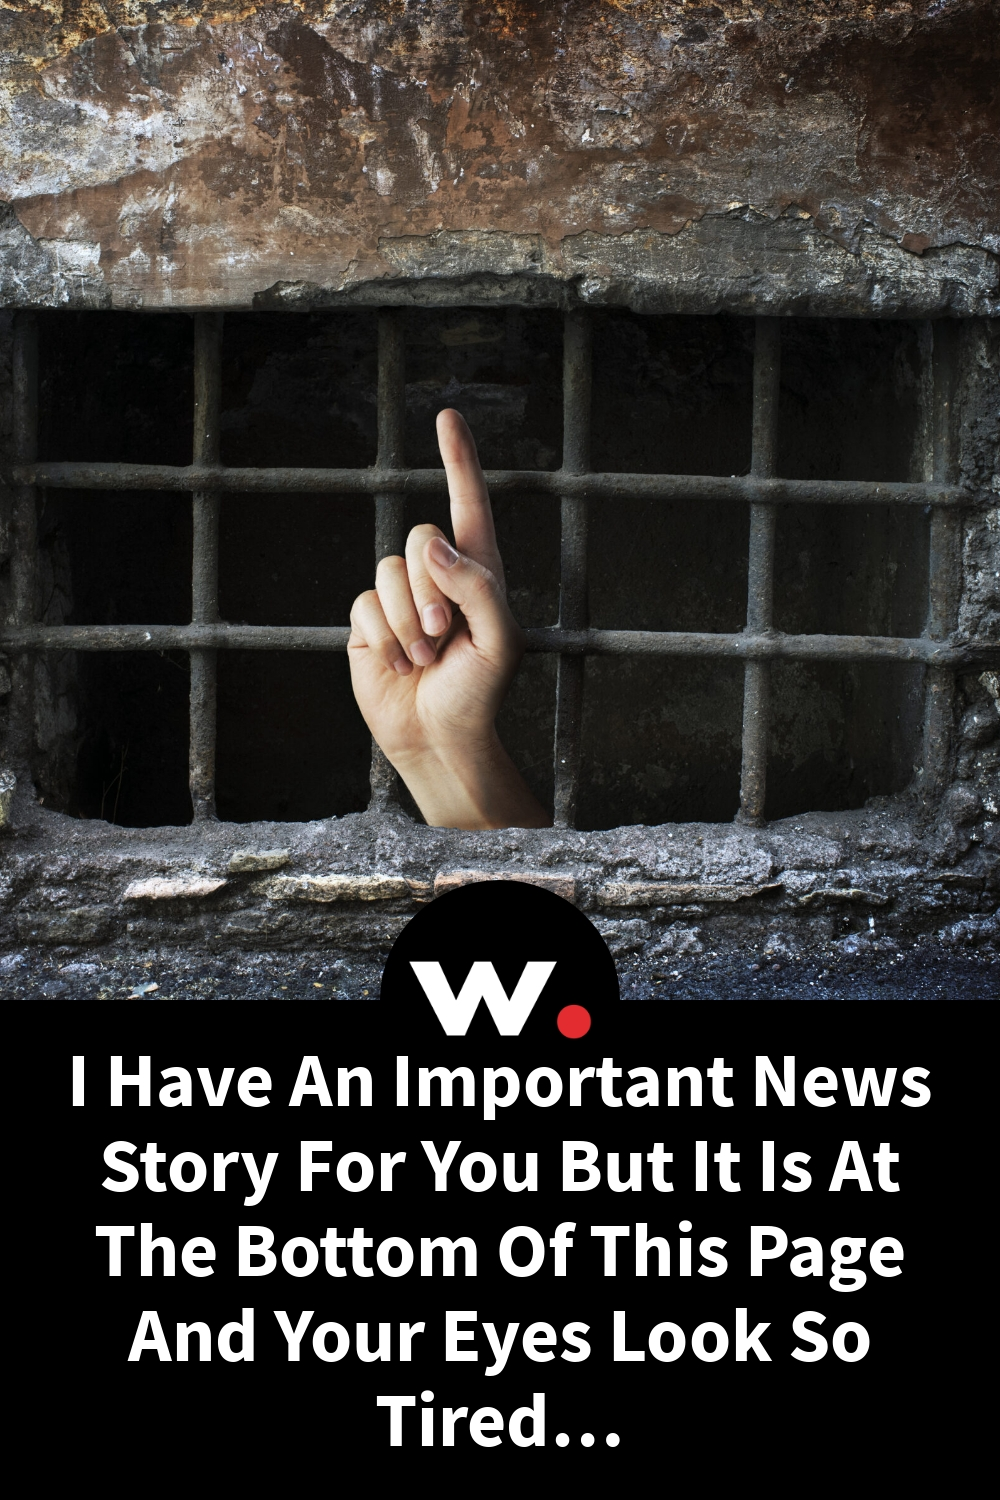 I Have An Important News Story For You But It Is At The Bottom Of This Page And Your Eyes Look So Tired…